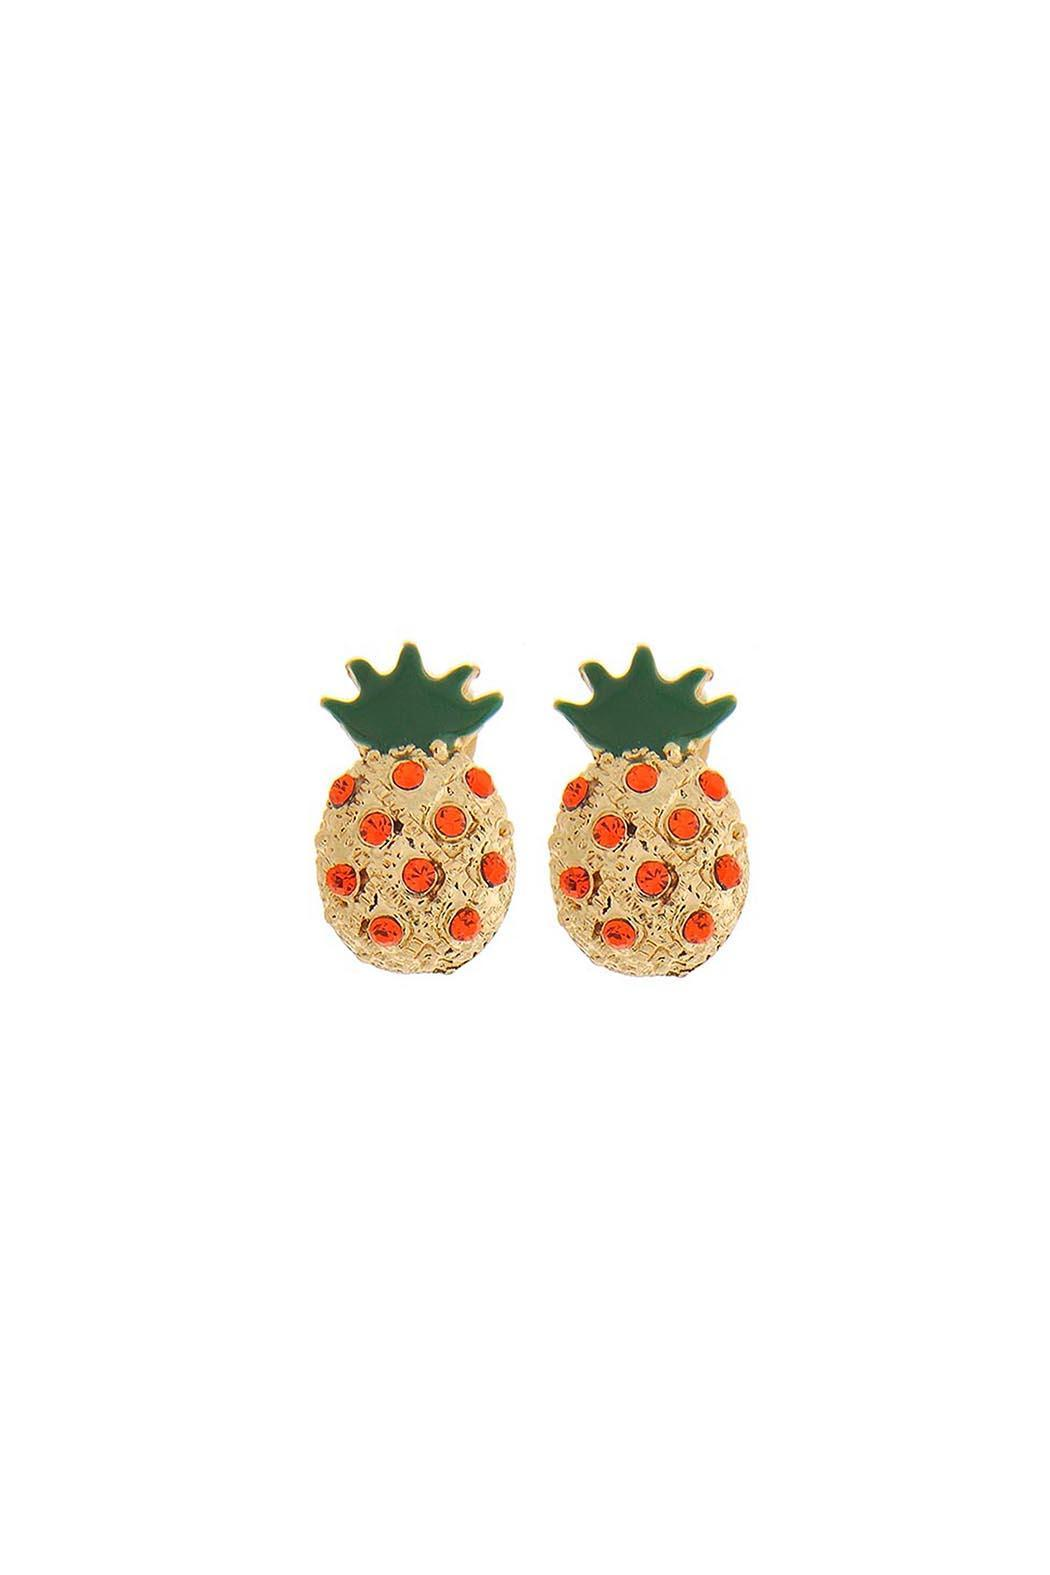 web diamond pineapple y yellow gold stud sydney evan earrings